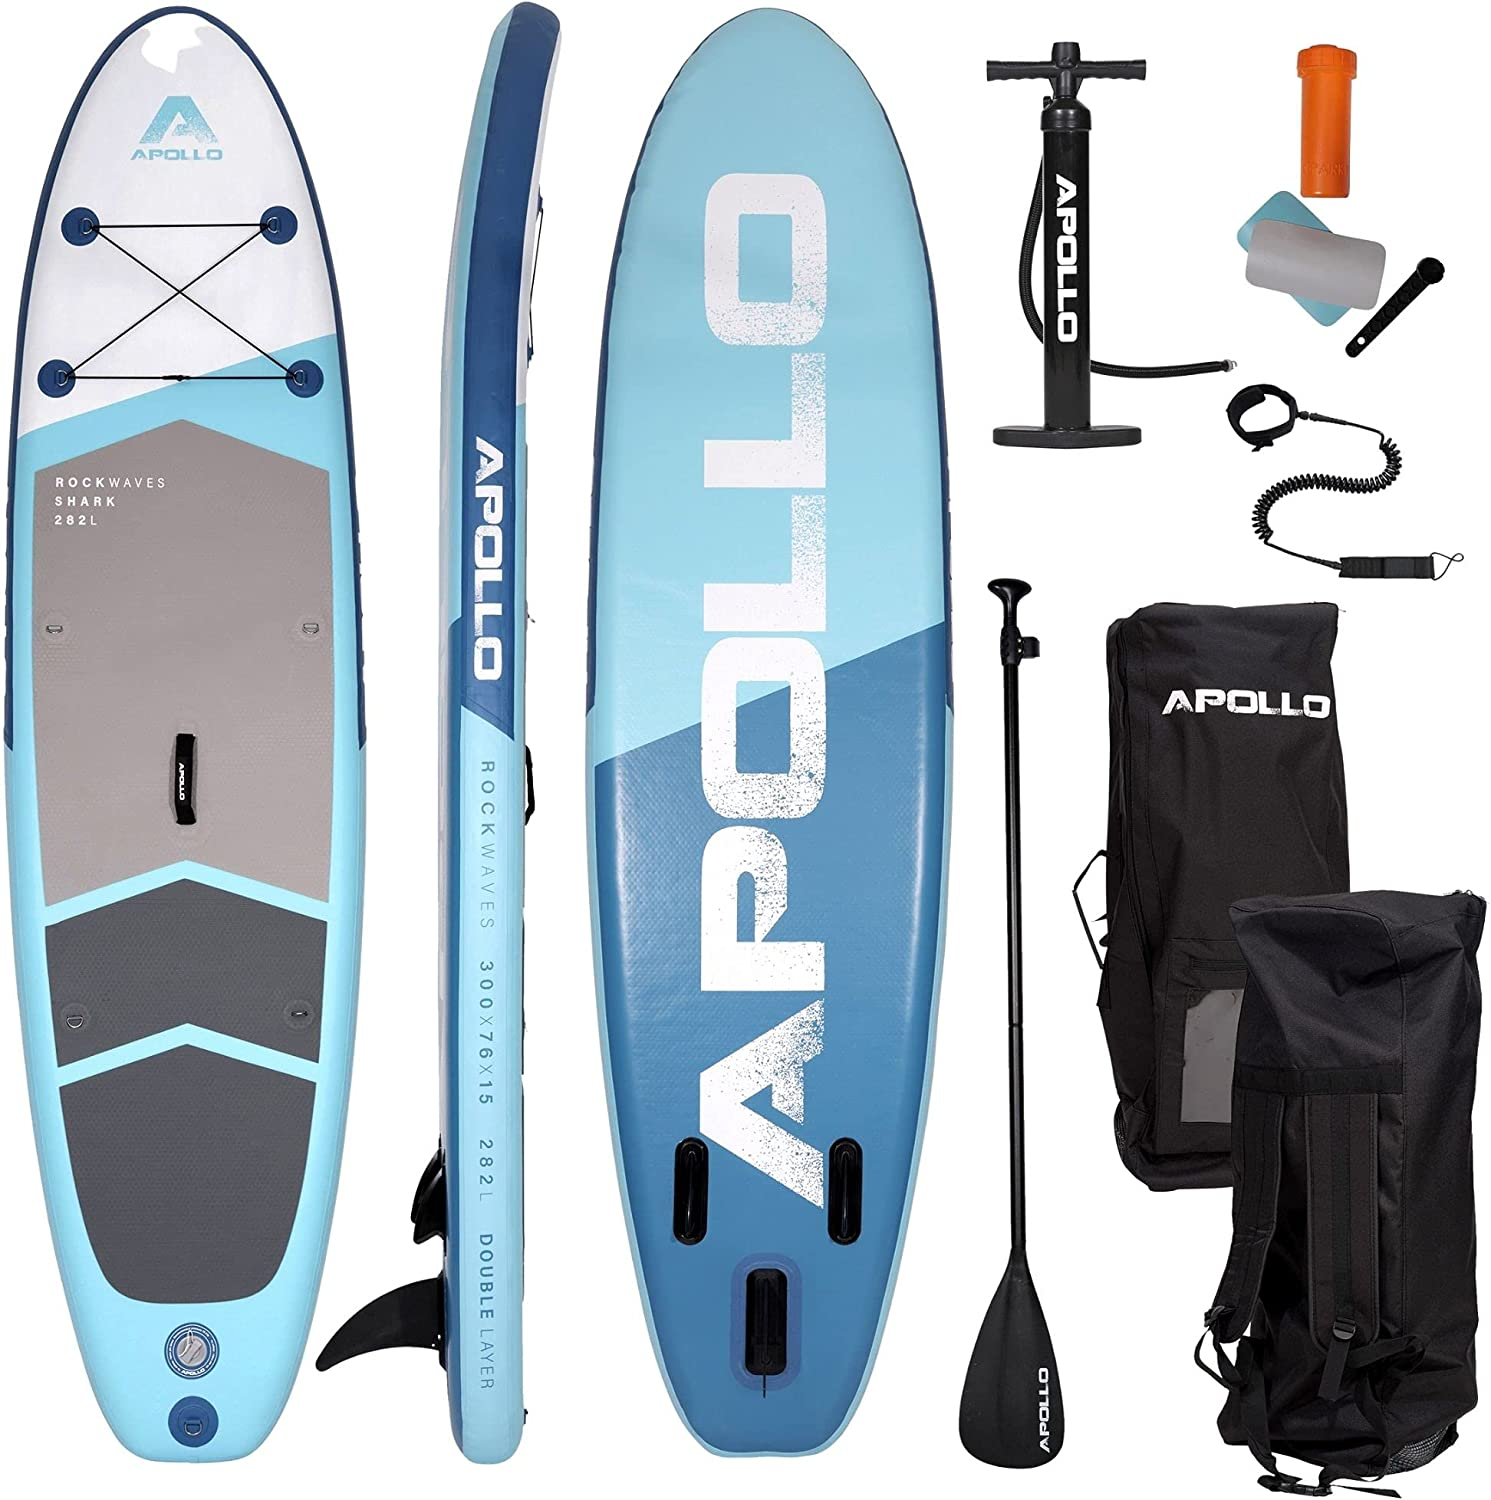 Apollo outlet Inflatable Phoenix Mall Stand Up Paddle Board - Blow SUP Standup up